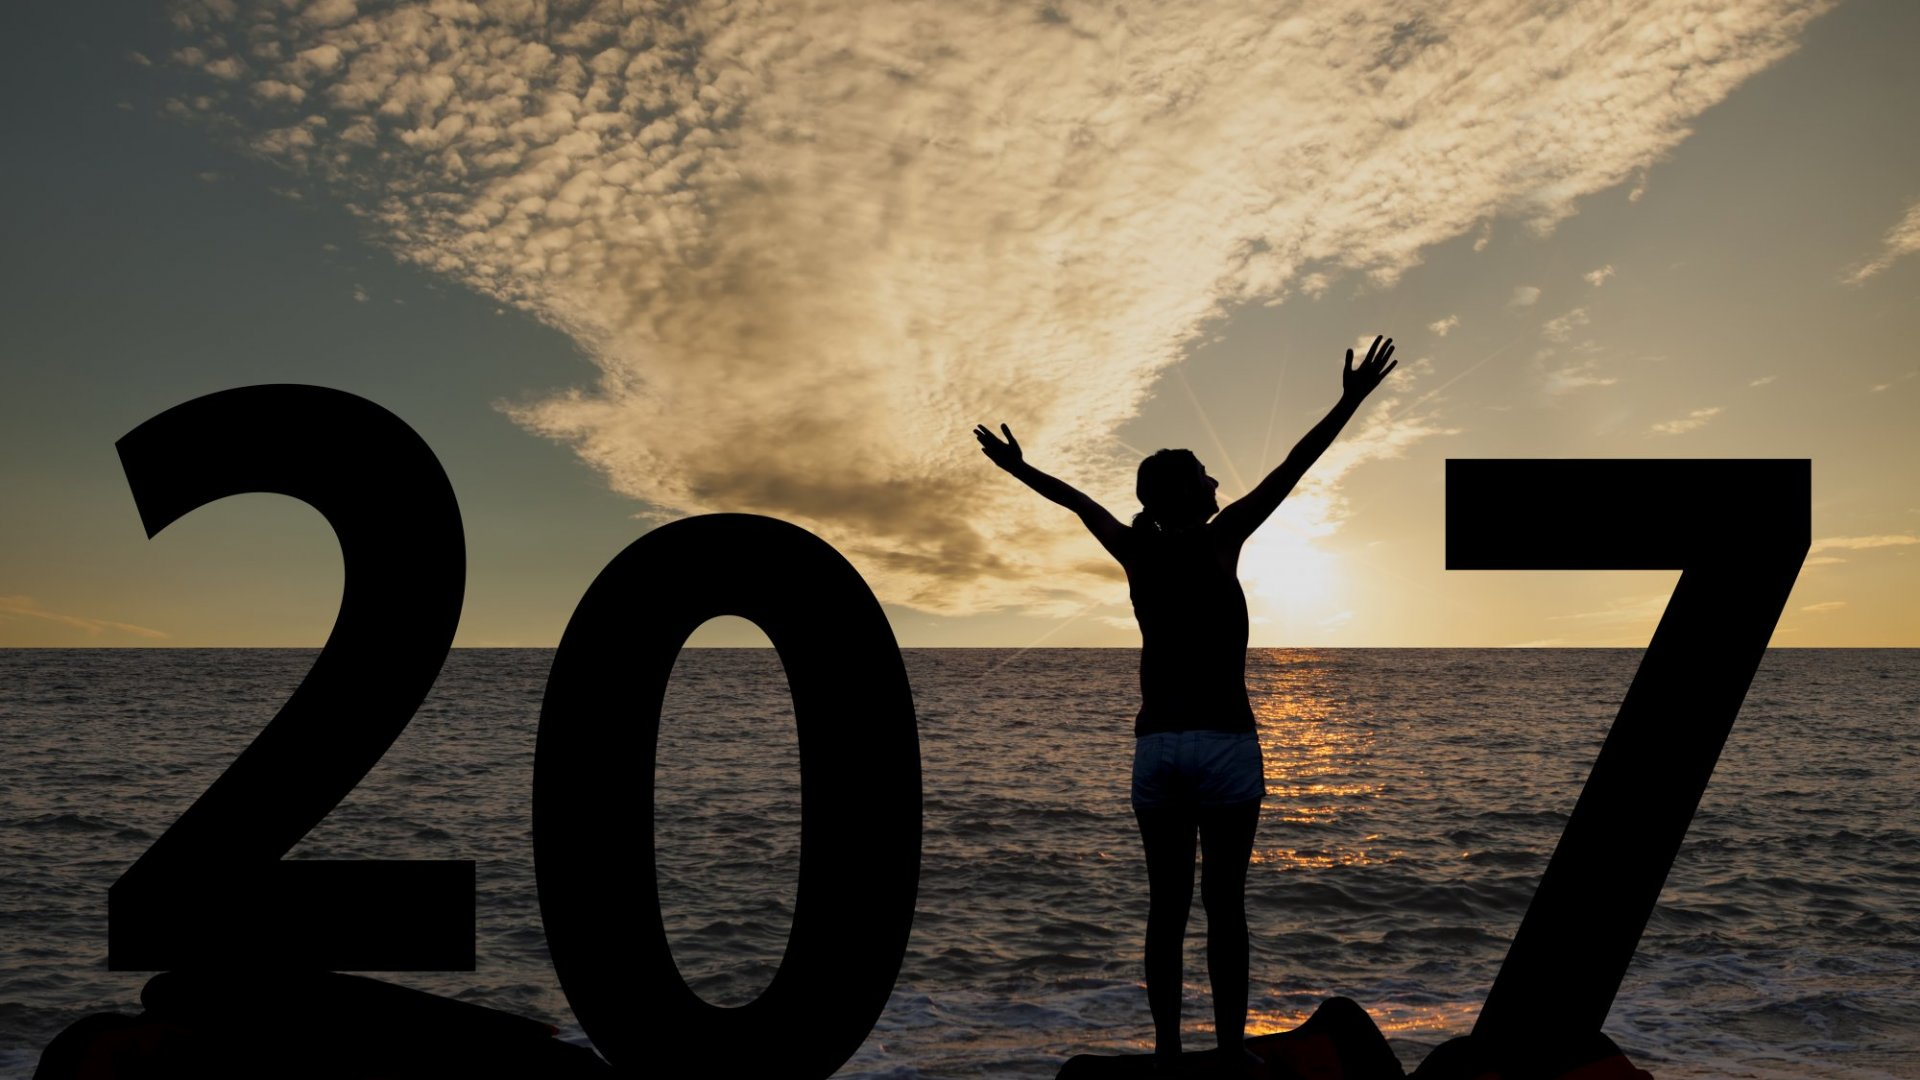 Start 2017 Off Right With These 100 Motivational Quotes